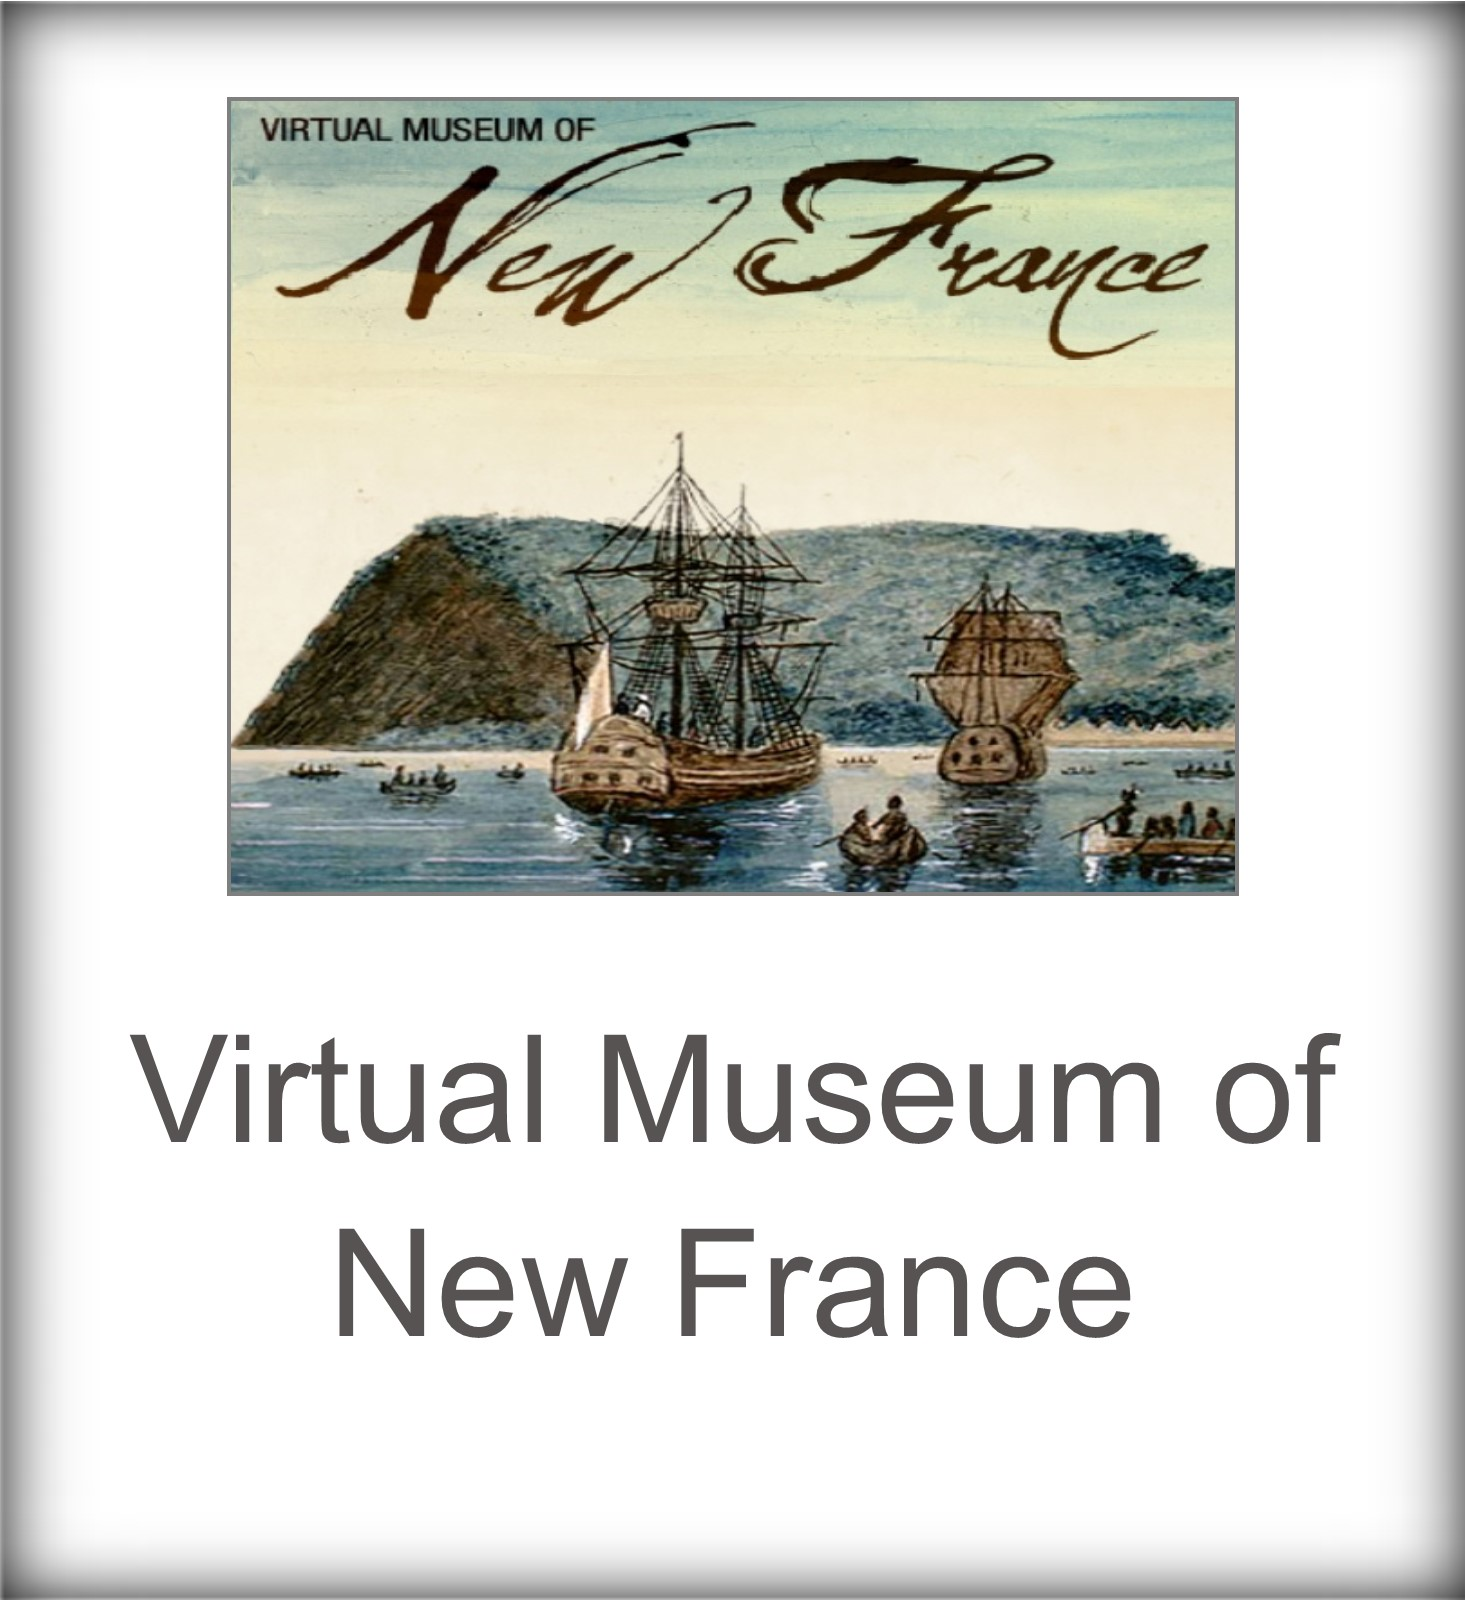 Virtual Museum of New France